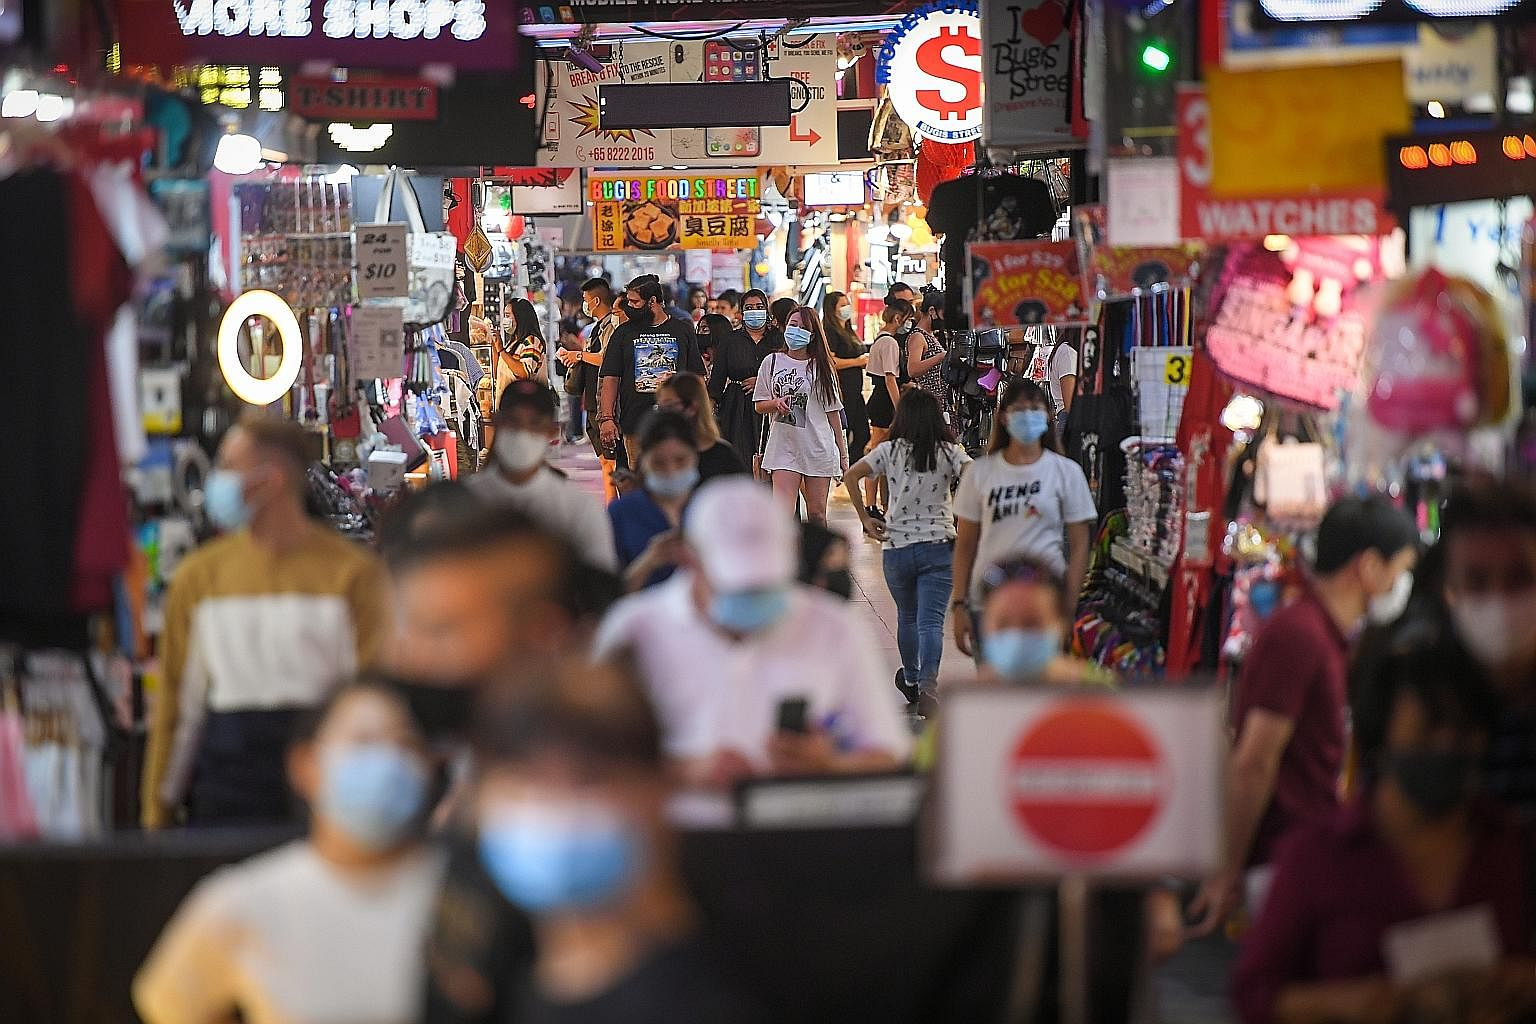 The bustle in Bugis Street on Monday, with the masks on people's faces the only giveaway that Singapore is still battling a pandemic. The currently low infection numbers here and the greater freedom to move around are a reward for everyone working to